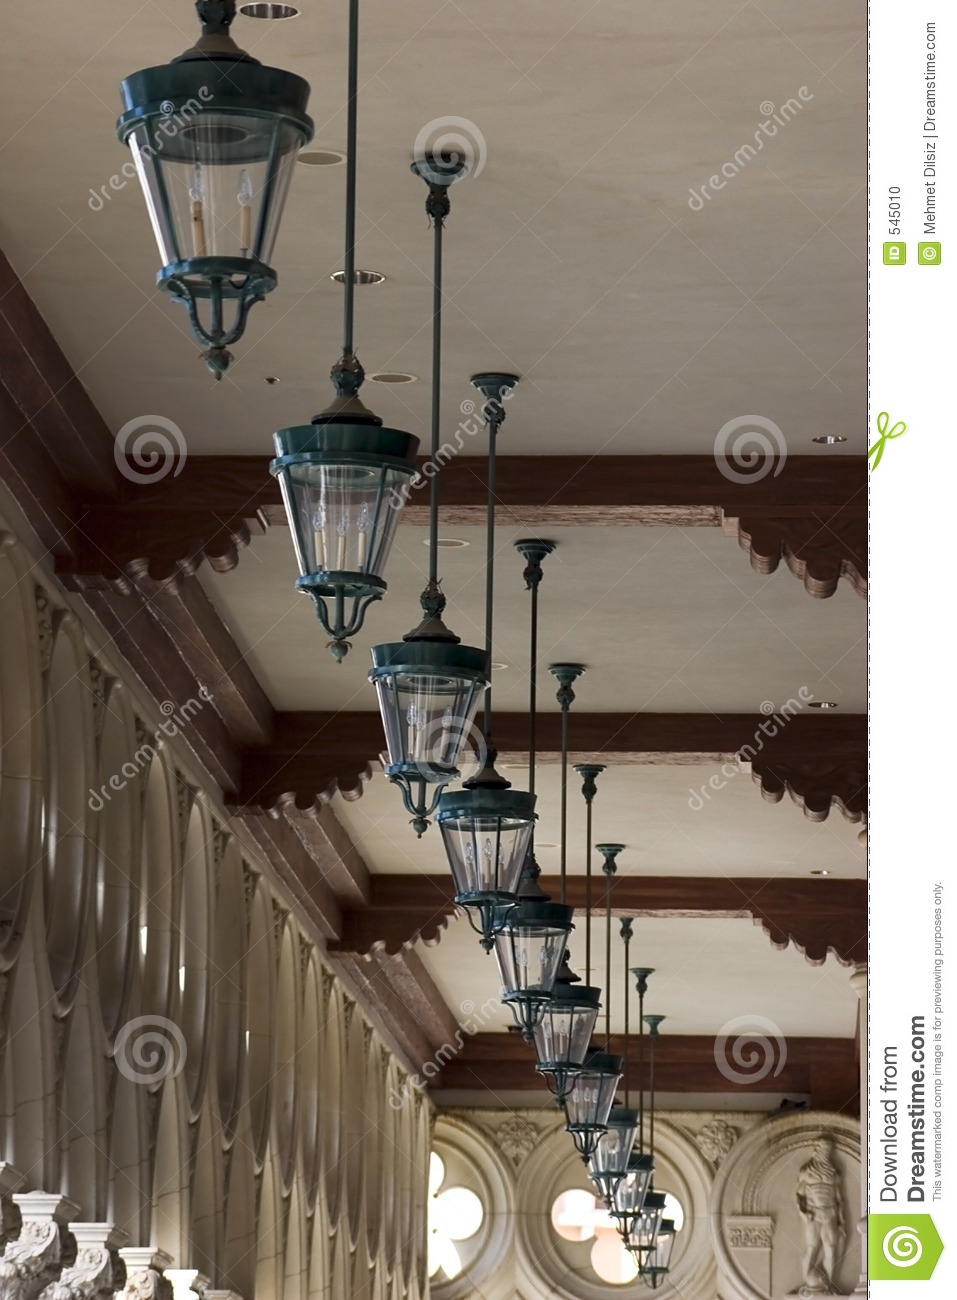 italian style ceiling lamps in a row in venetian las. Black Bedroom Furniture Sets. Home Design Ideas